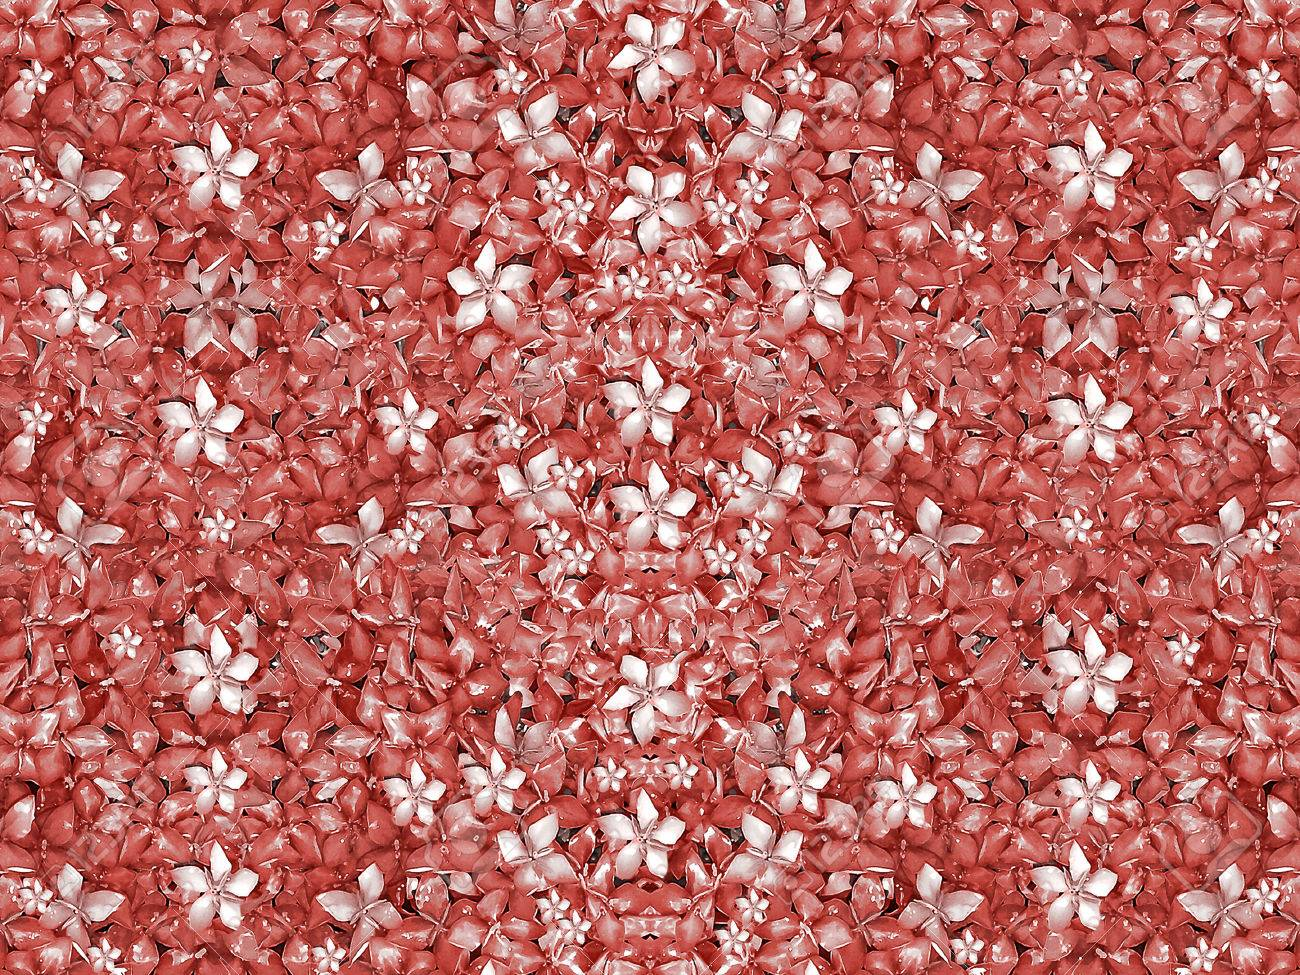 Digital style collage technique beautiful and unique flowers stock digital style collage technique beautiful and unique flowers motif pattern background in coral and white colors izmirmasajfo